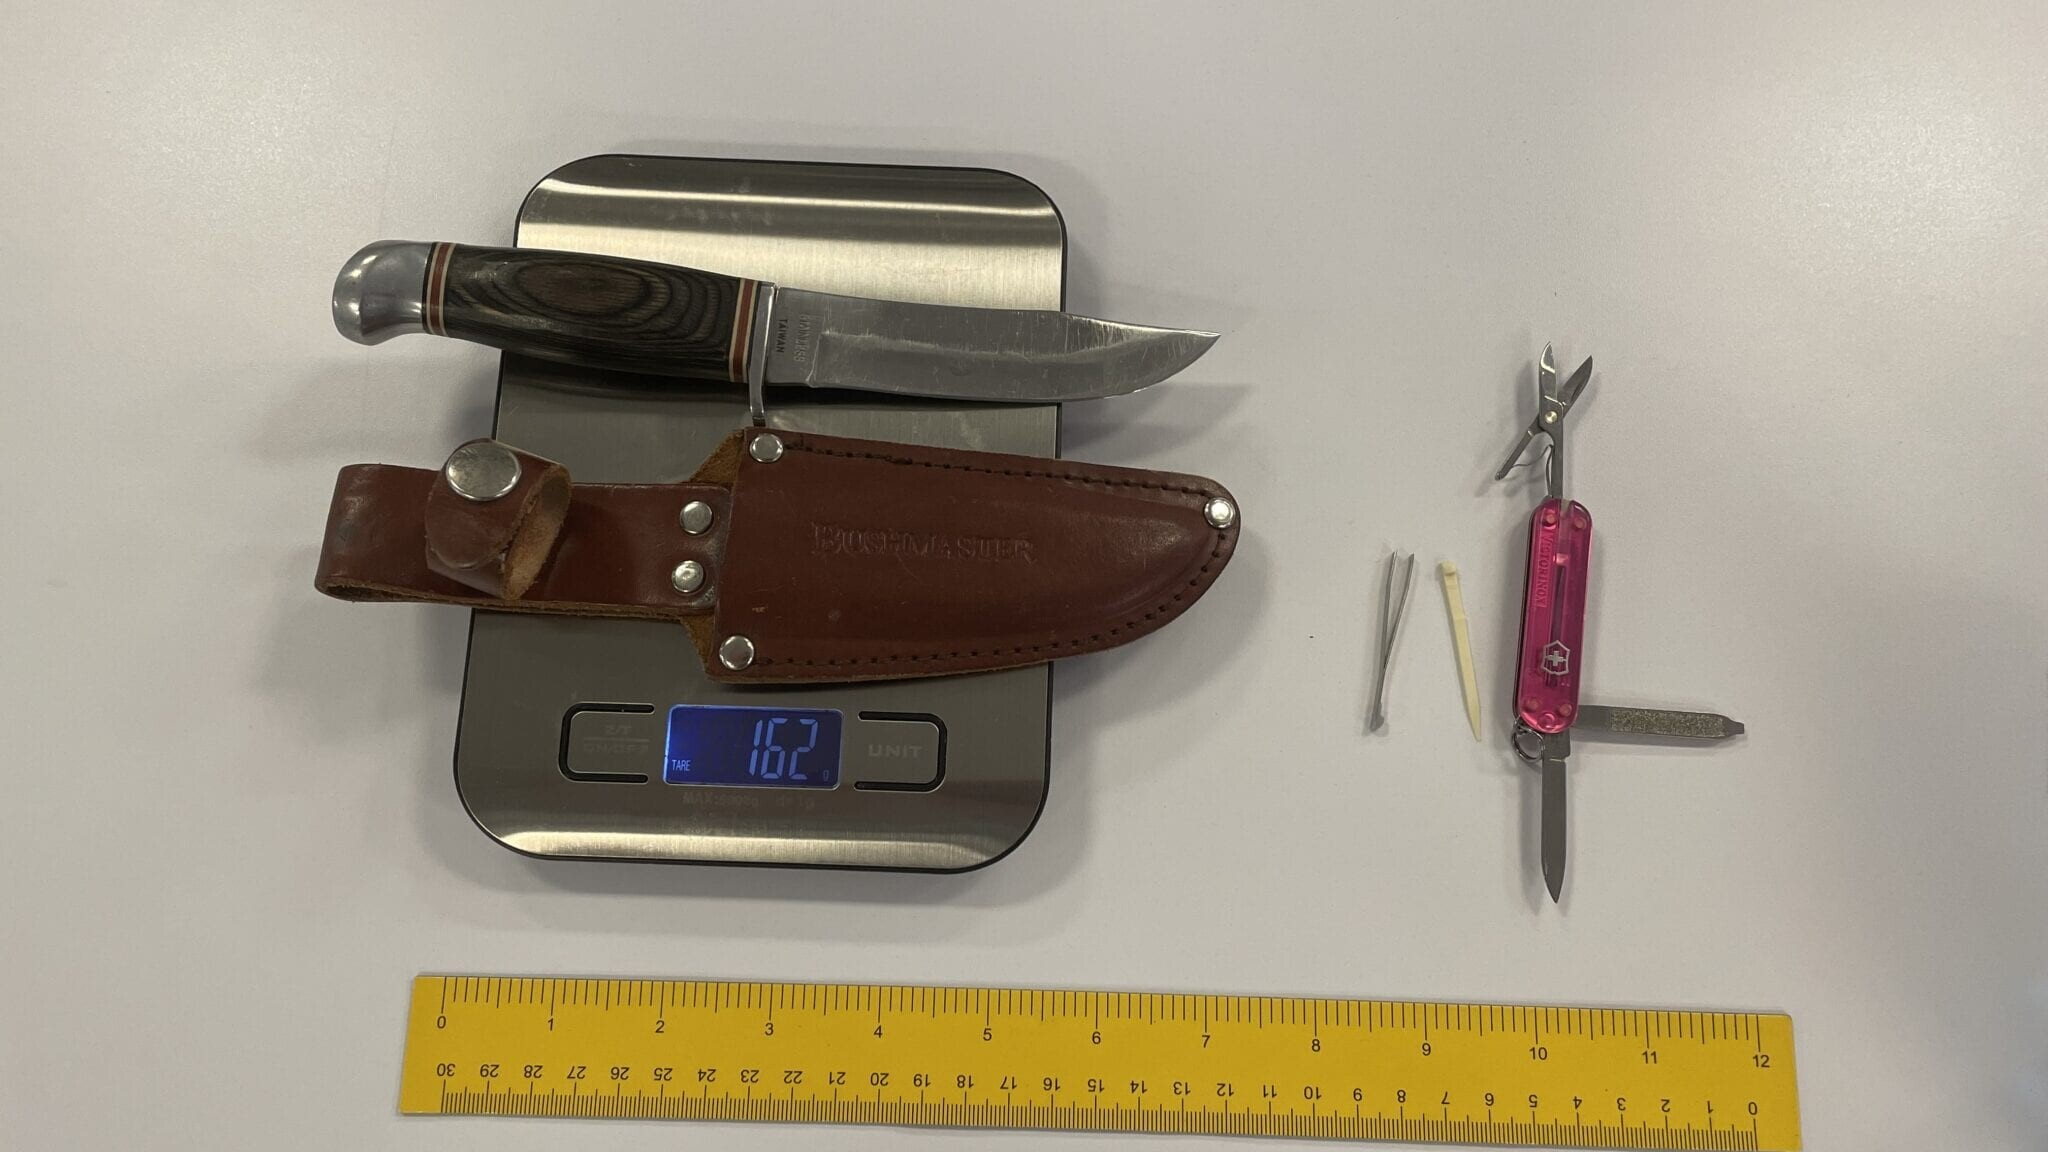 knives laying on scale